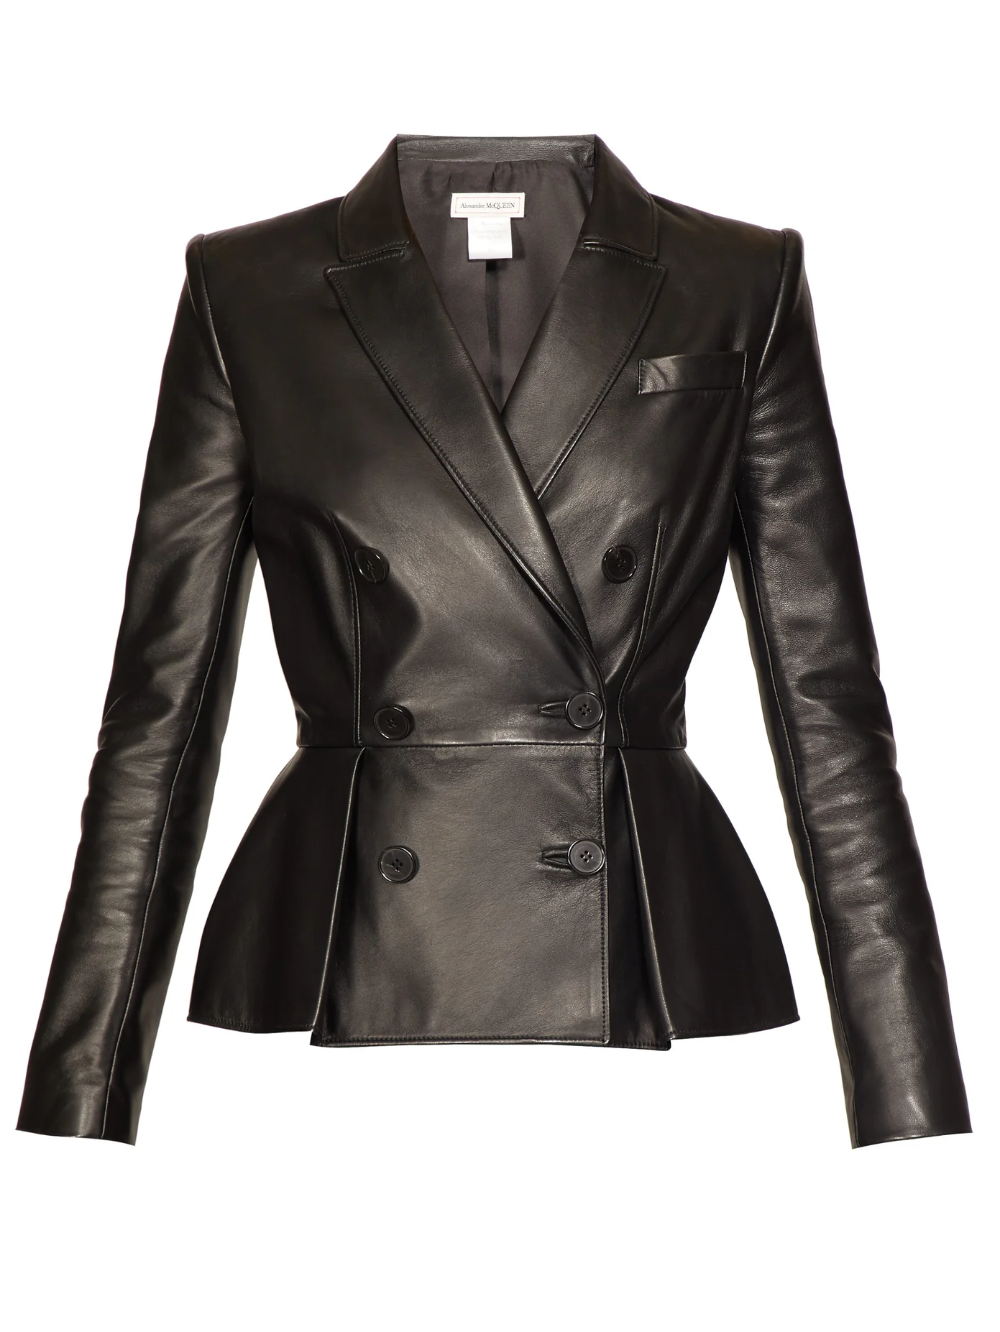 Pleat Front Double Breasted Leather Jacket Alexander Mcqueen Matchesfashion Us Leather Jackets Women Leather Jacket Womens Black Leather Jacket [ 1332 x 1000 Pixel ]